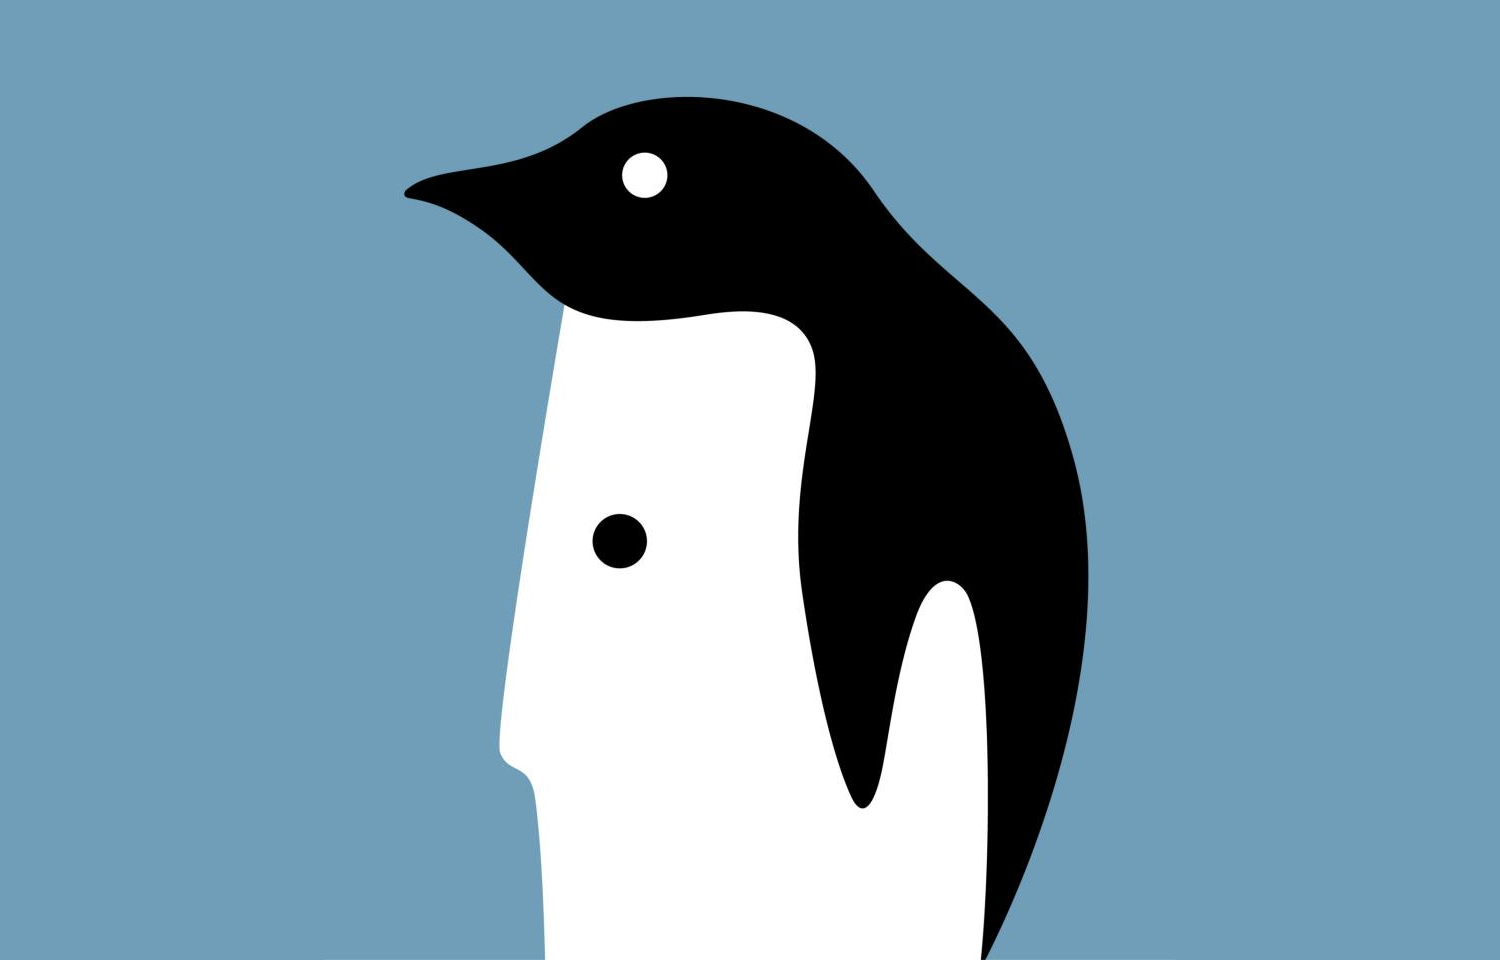 noma bar illusion graphic design penguin